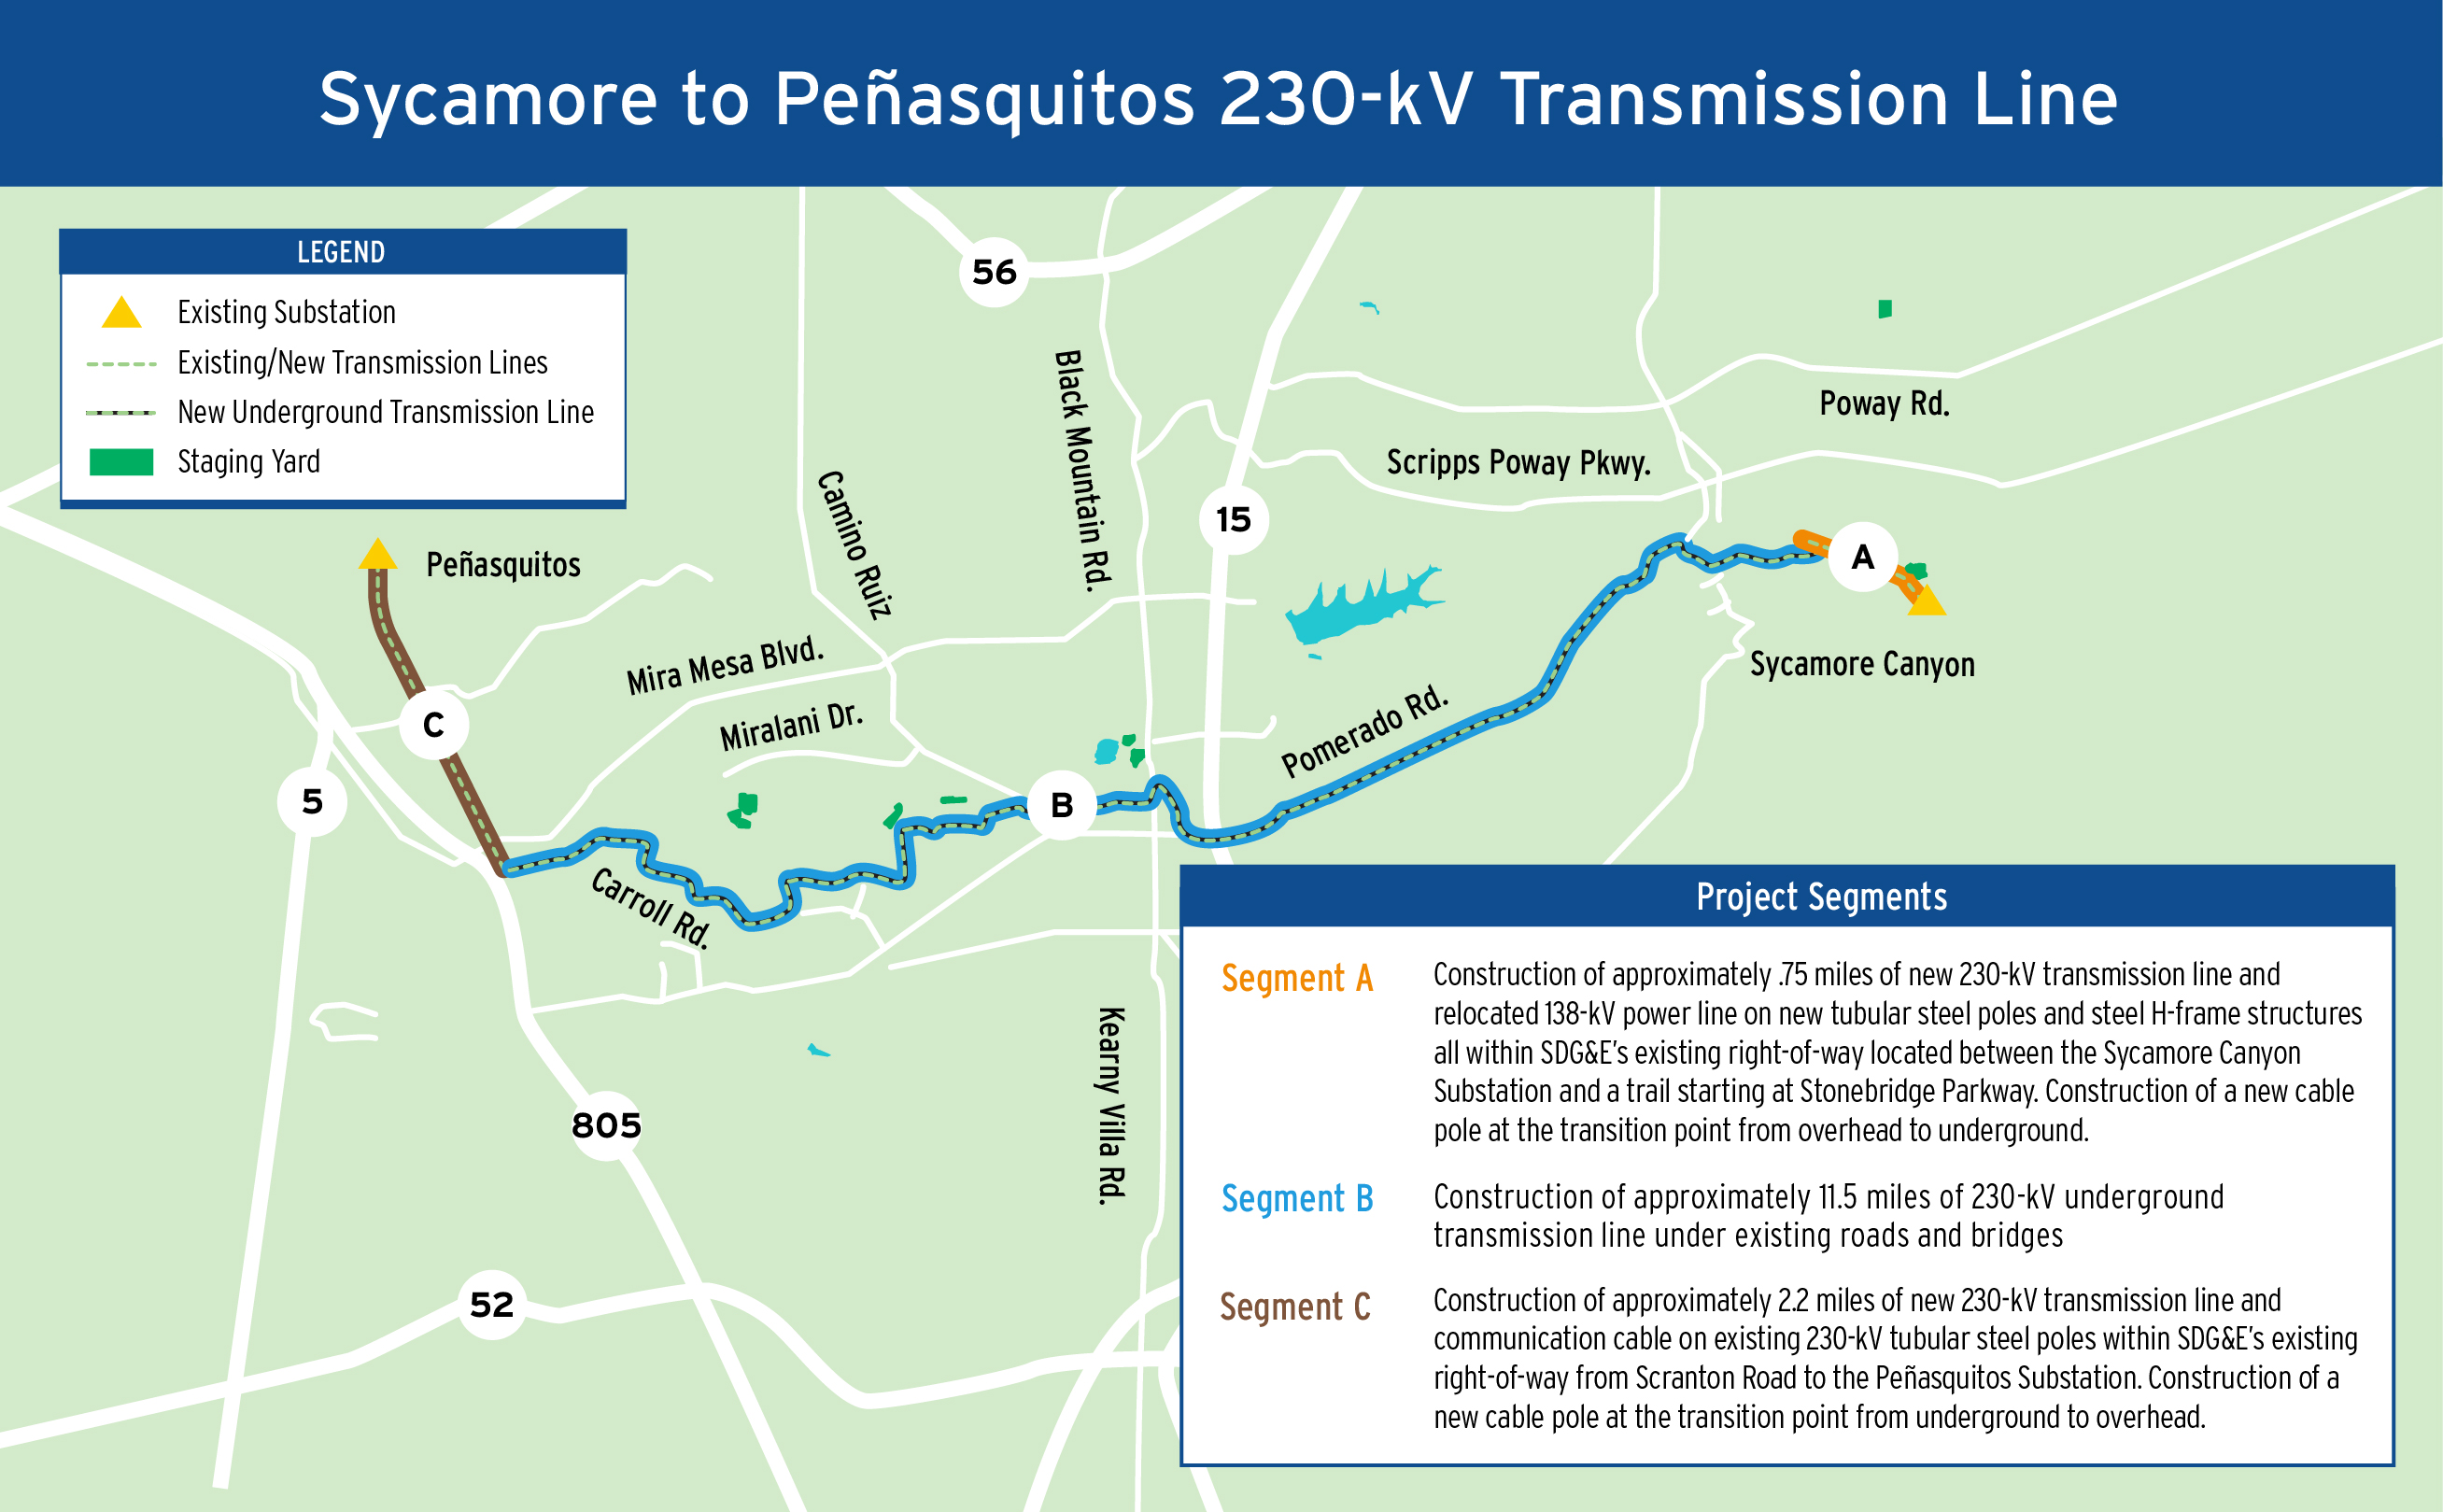 Sycamore to Peñasquitos 230-kV Transmission Line Project Map ... on xcel energy power outage map, pepco power outage map, pse power outage map, ppl power outage map, puget sound energy power outage map, smud power outage map, dte power outage map, aps power outage map, psnh power outage map, pg&e power outage map, austin energy power outage map, avista power outage map,